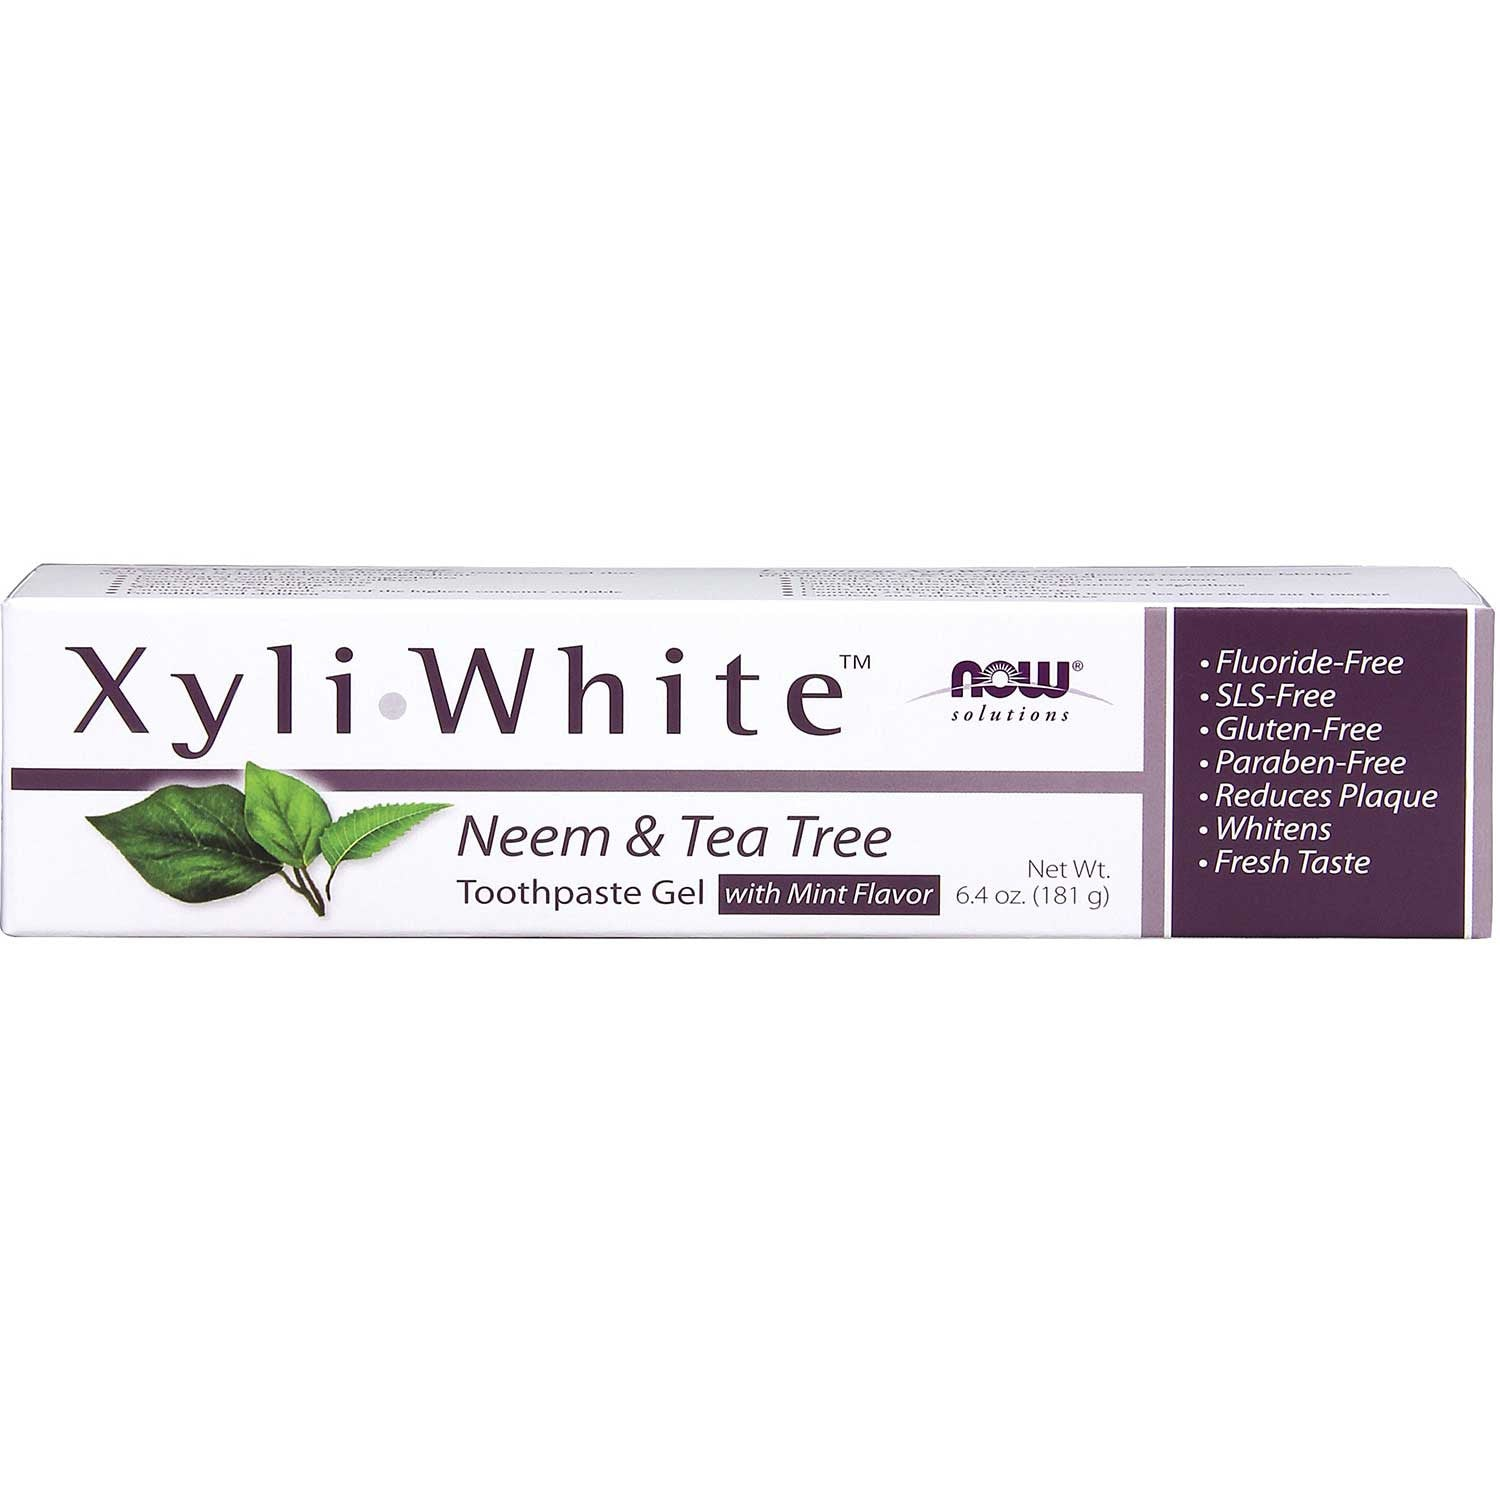 NOW XyliWhite Toothpaste Gel - Neem & Tea Tree (Fluoride-Free), 181 g.-NaturesWisdom